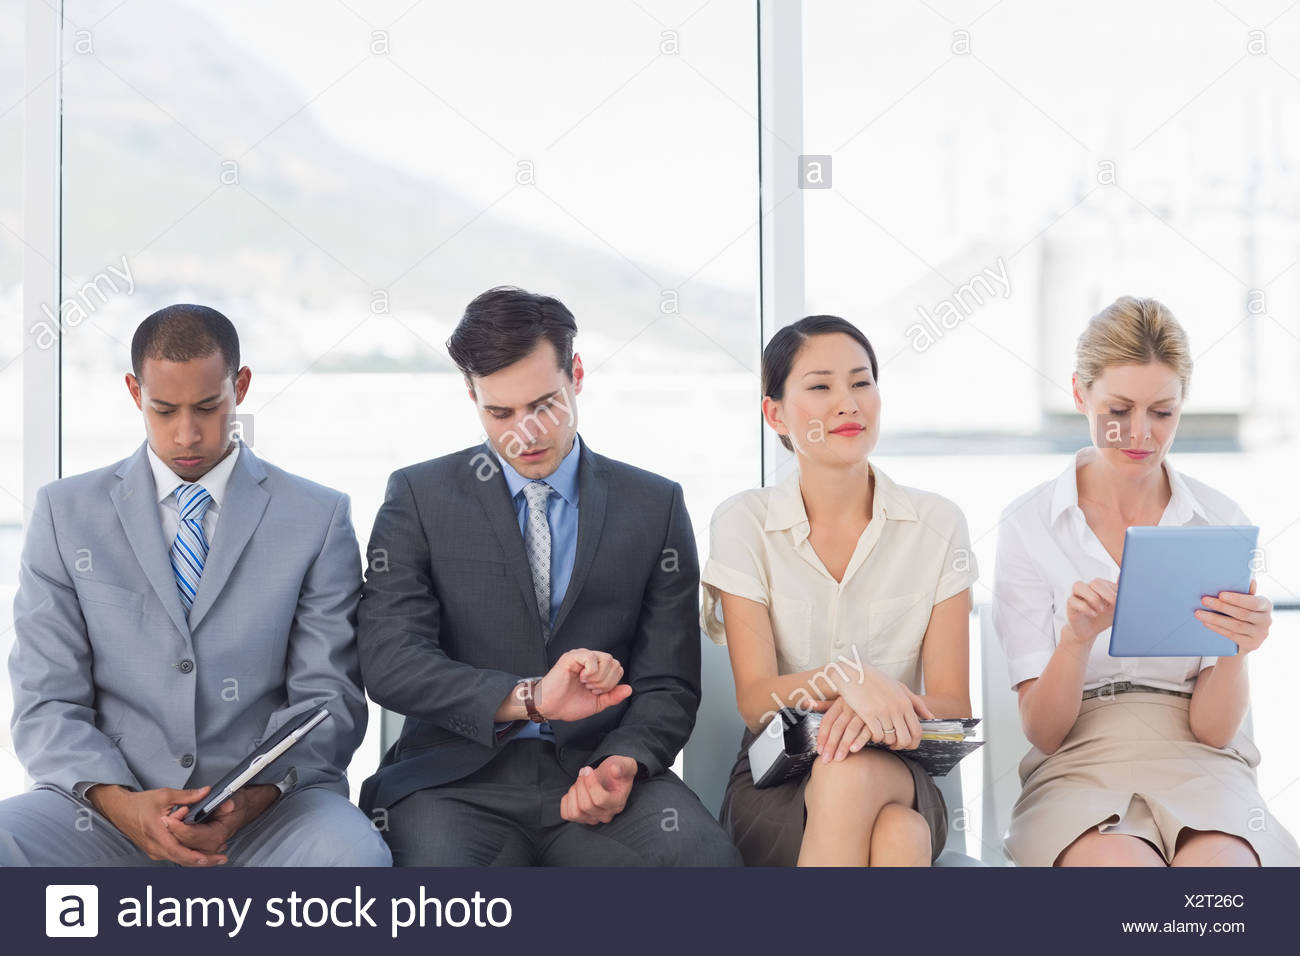 Business people waiting for job interview - Stock Image